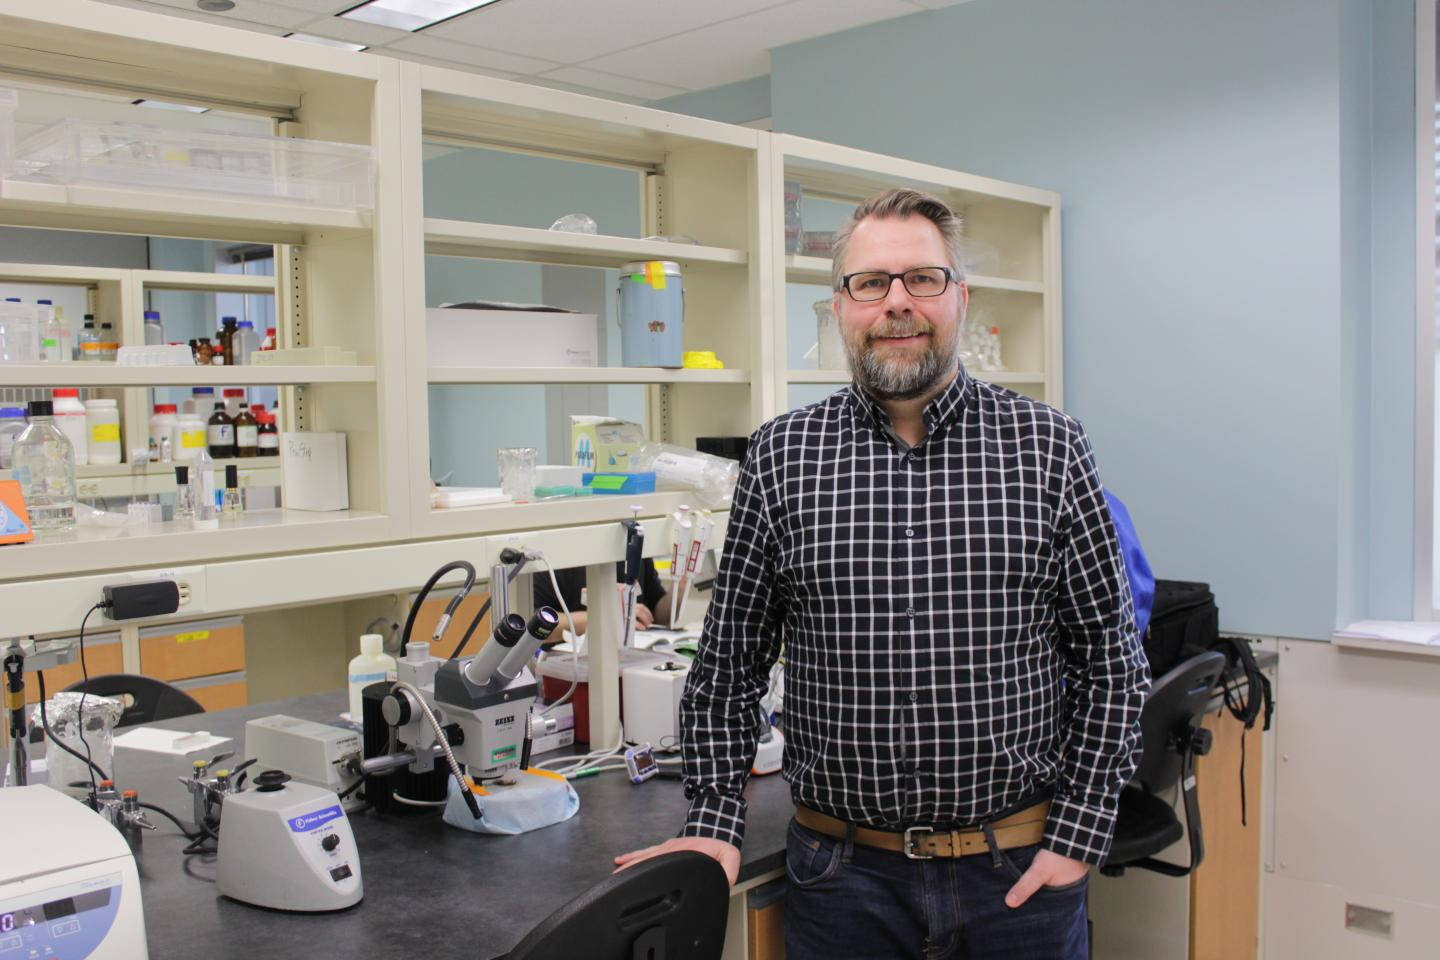 University of Alberta neuroscientist Jason Plemel, PhD, was part of a team of Canadian researchers who discovered that immune cells in the brain and spinal cord behave differently from blood immune cells in their response to nerve damage